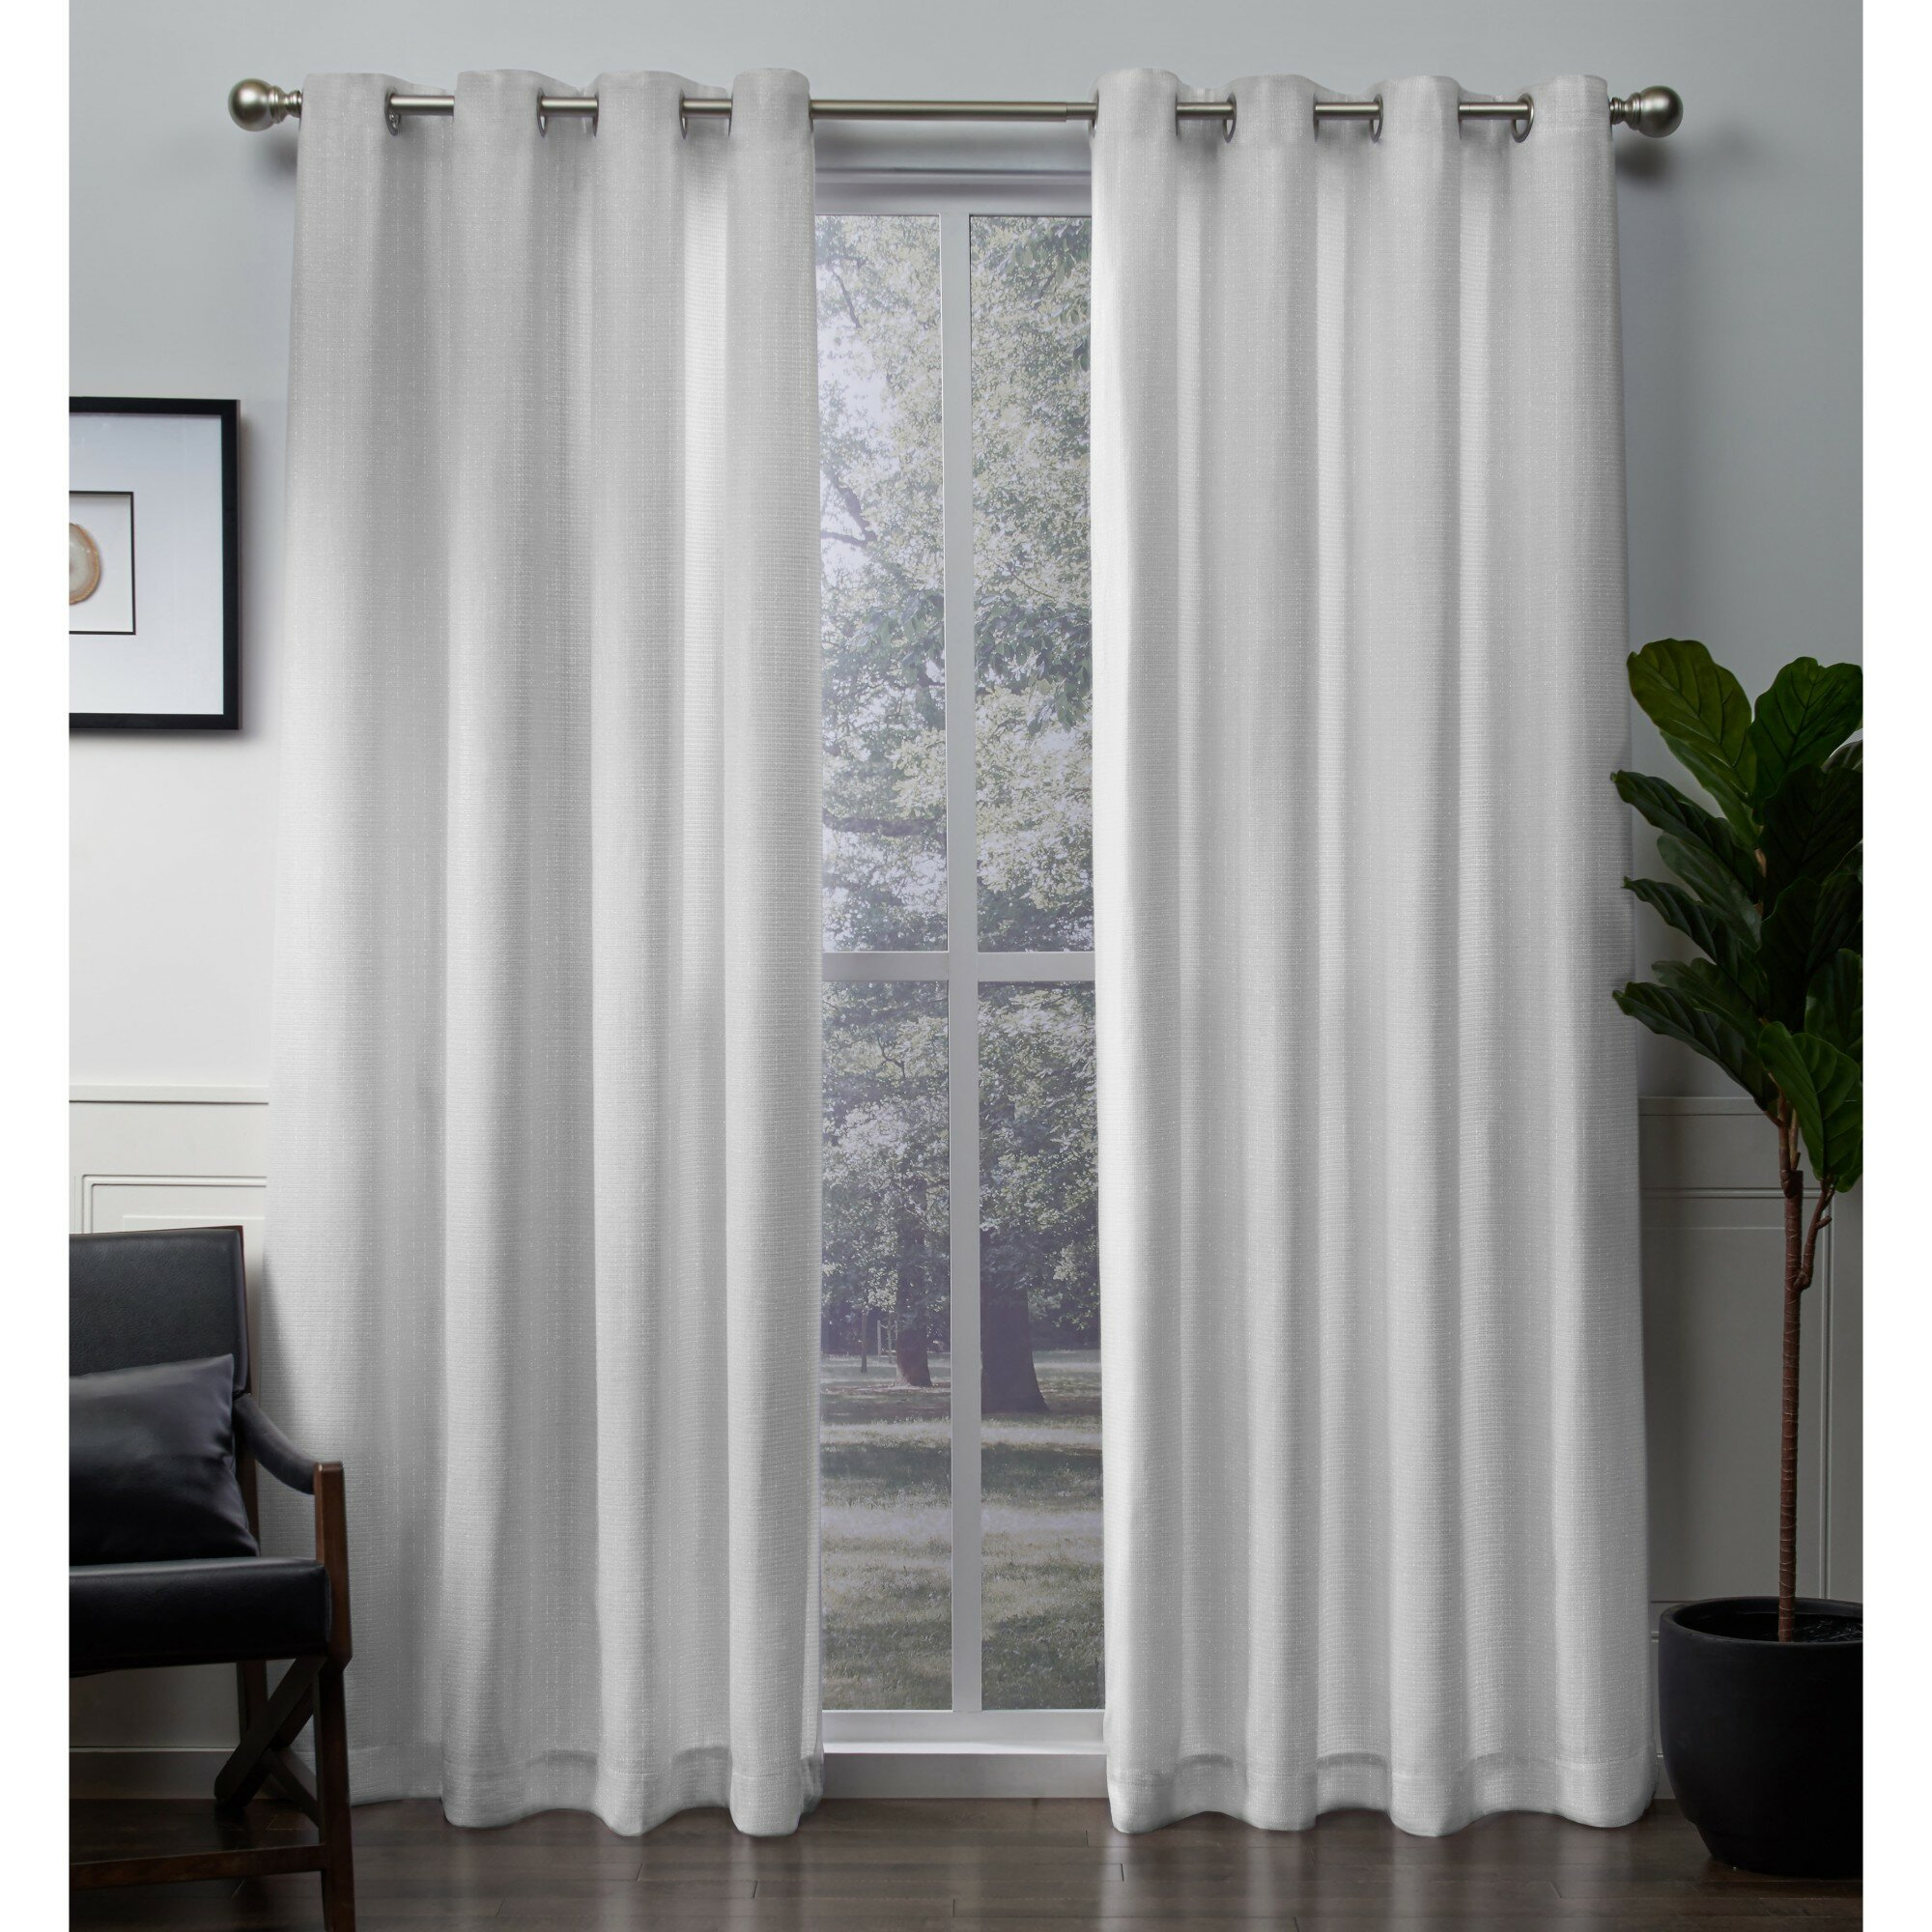 Blackledge Solid Room Darkening Grommet Panel Pair Throughout Raw Silk Thermal Insulated Grommet Top Curtain Panel Pairs (View 16 of 20)